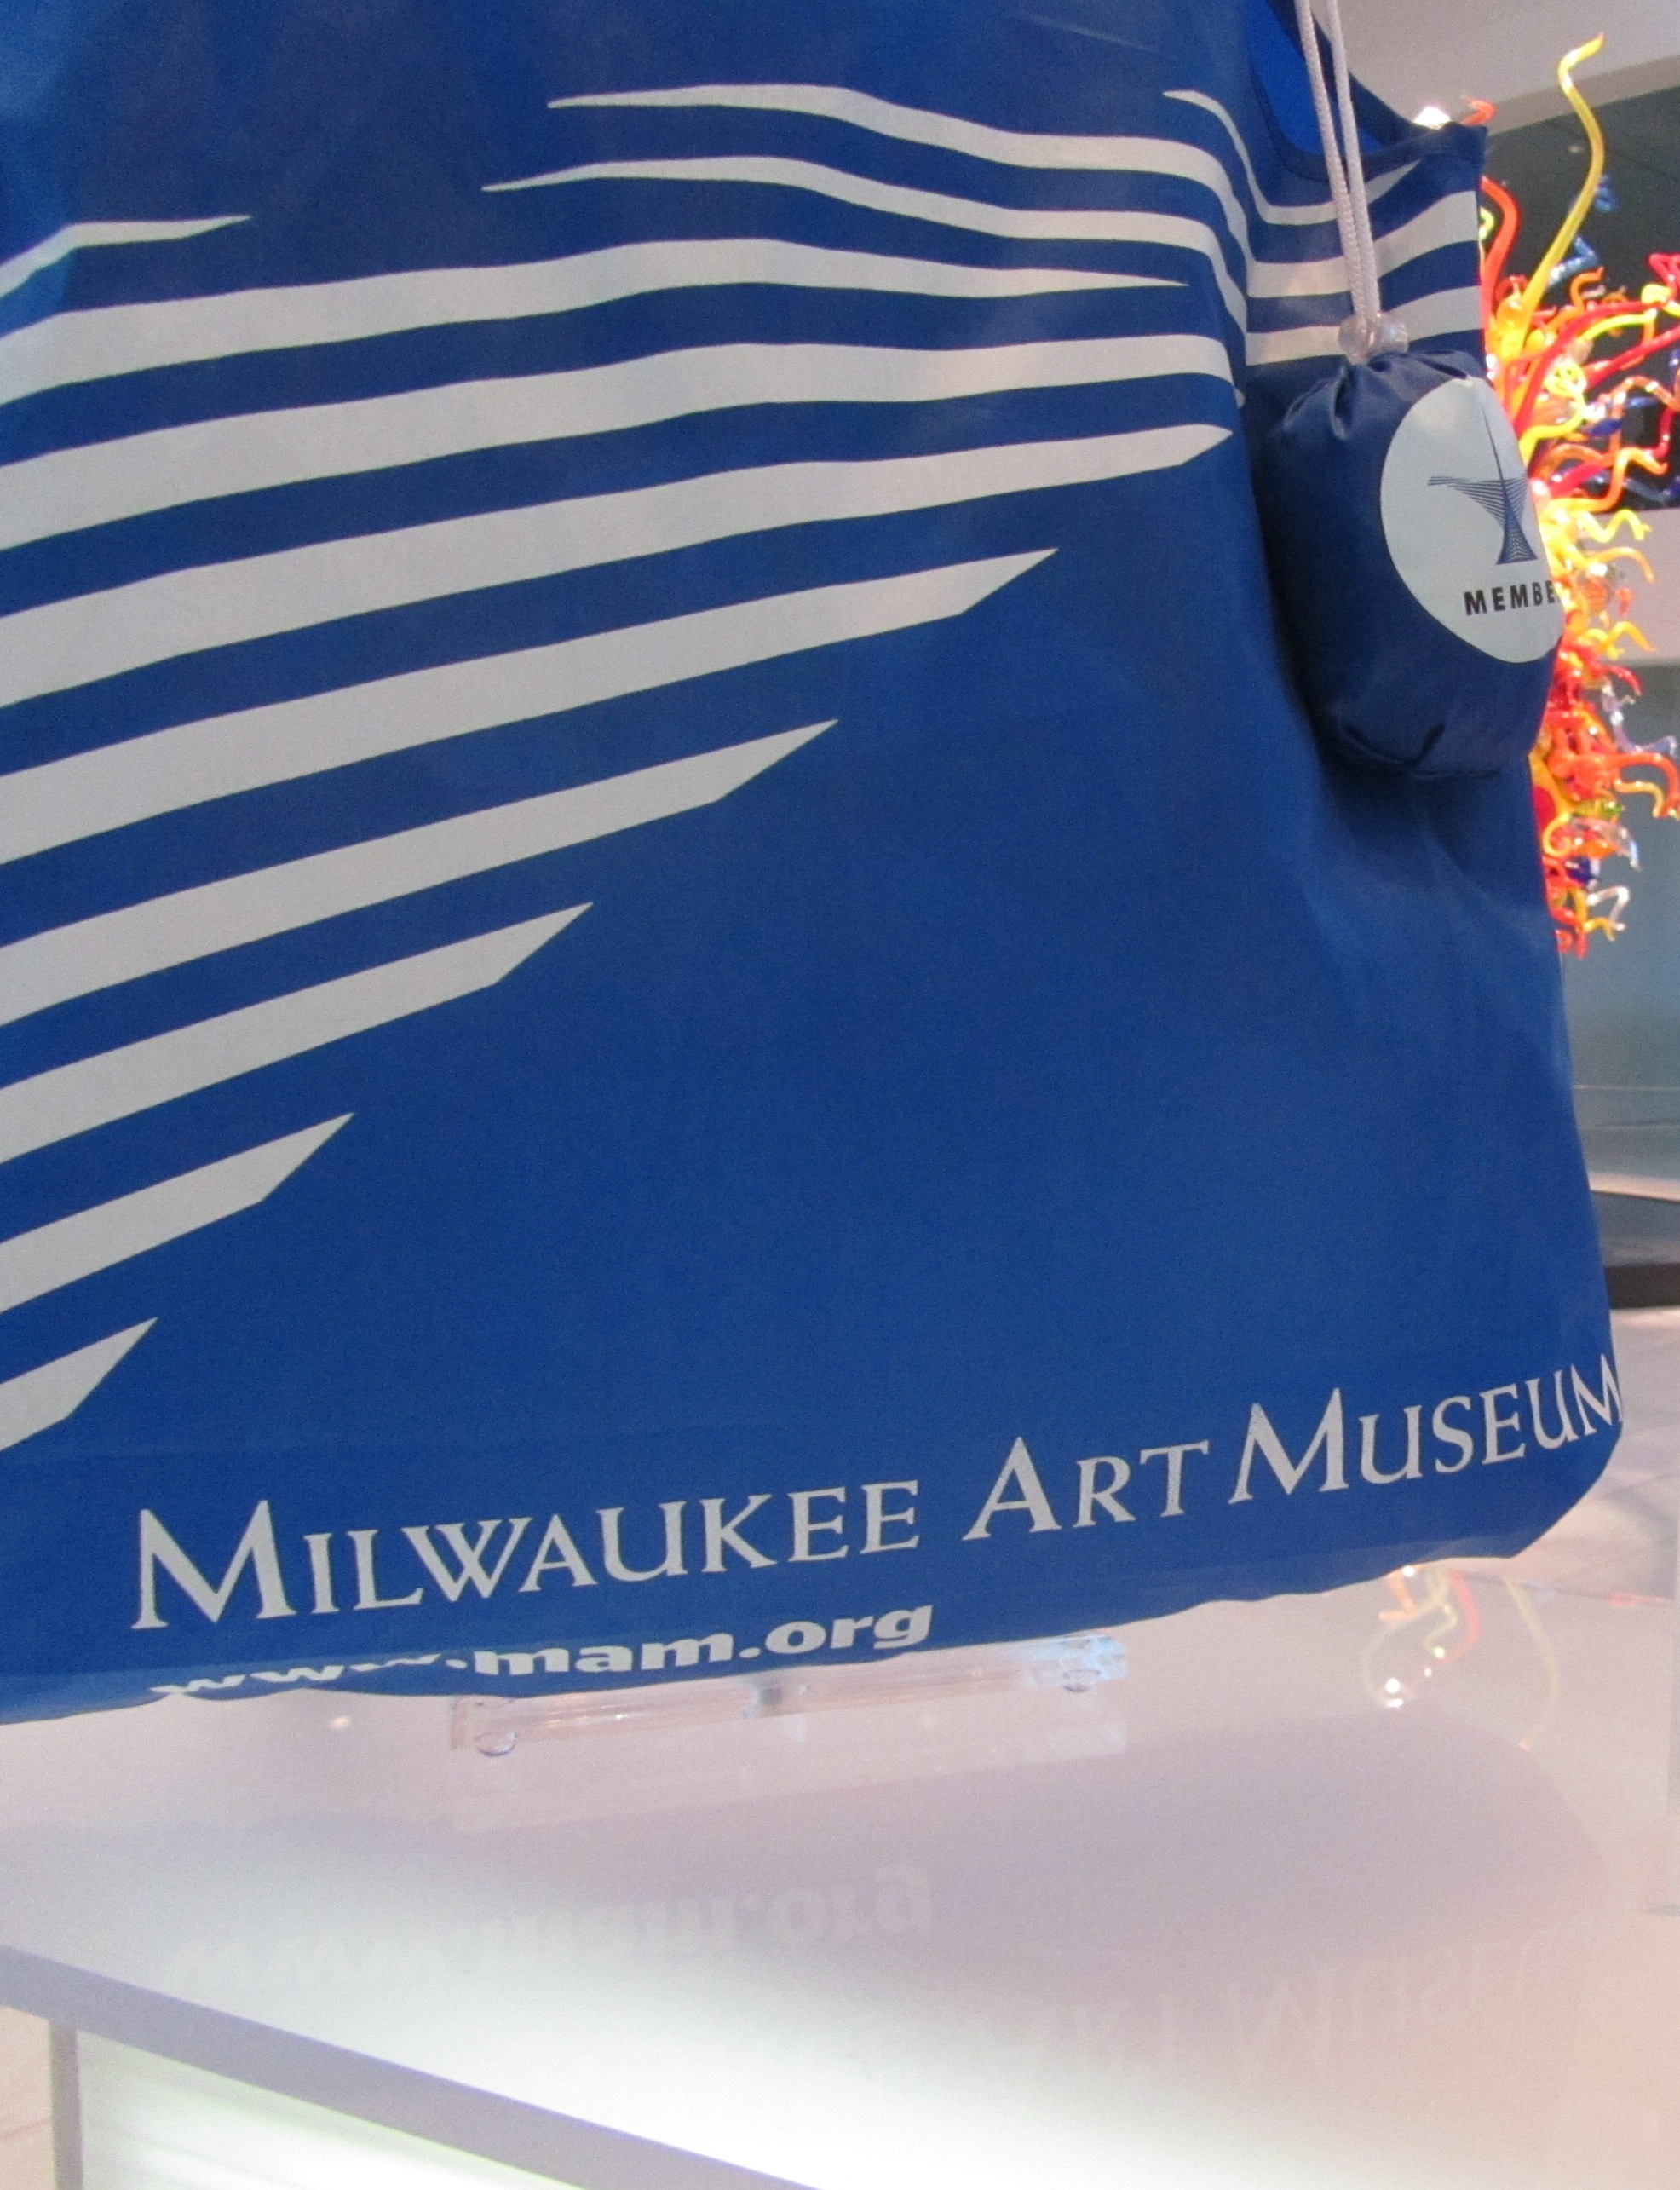 """""""Milwaukee Art Museum"""" in Weiss Antiqua font on Members tote bag."""